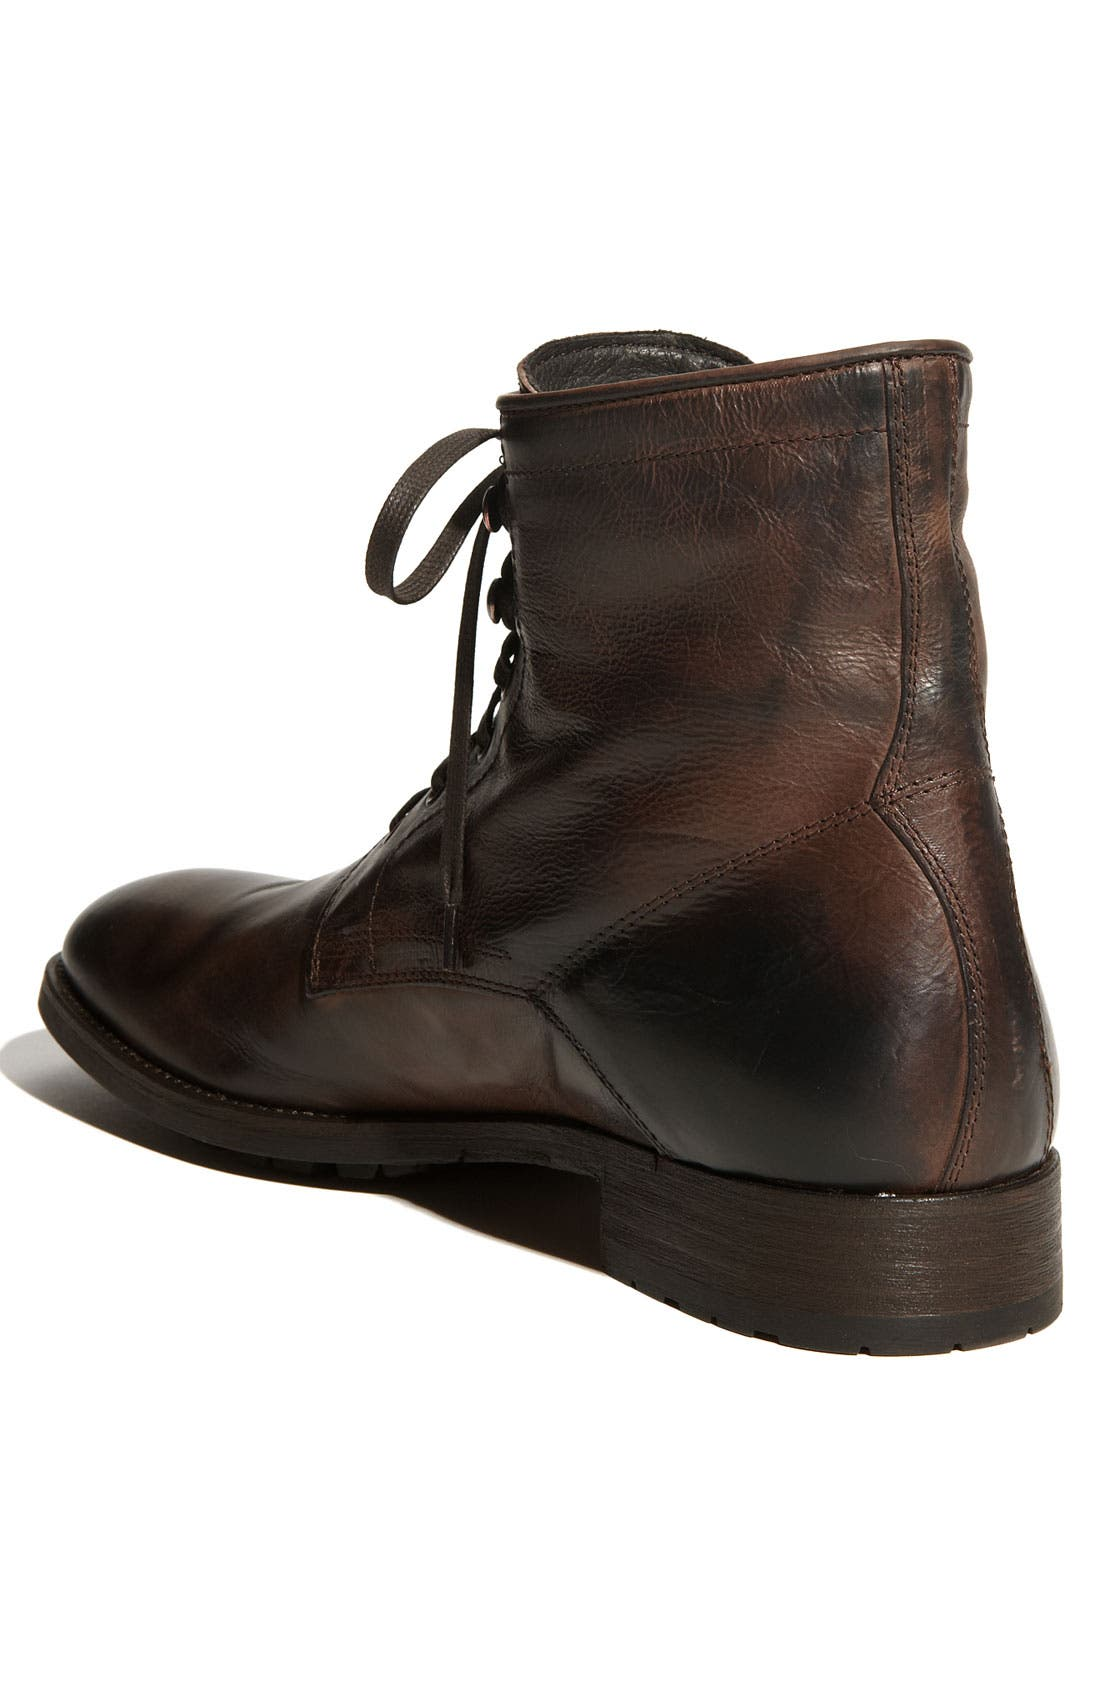 Alternate Image 2  - To Boot New York 'Kilburn' Boot